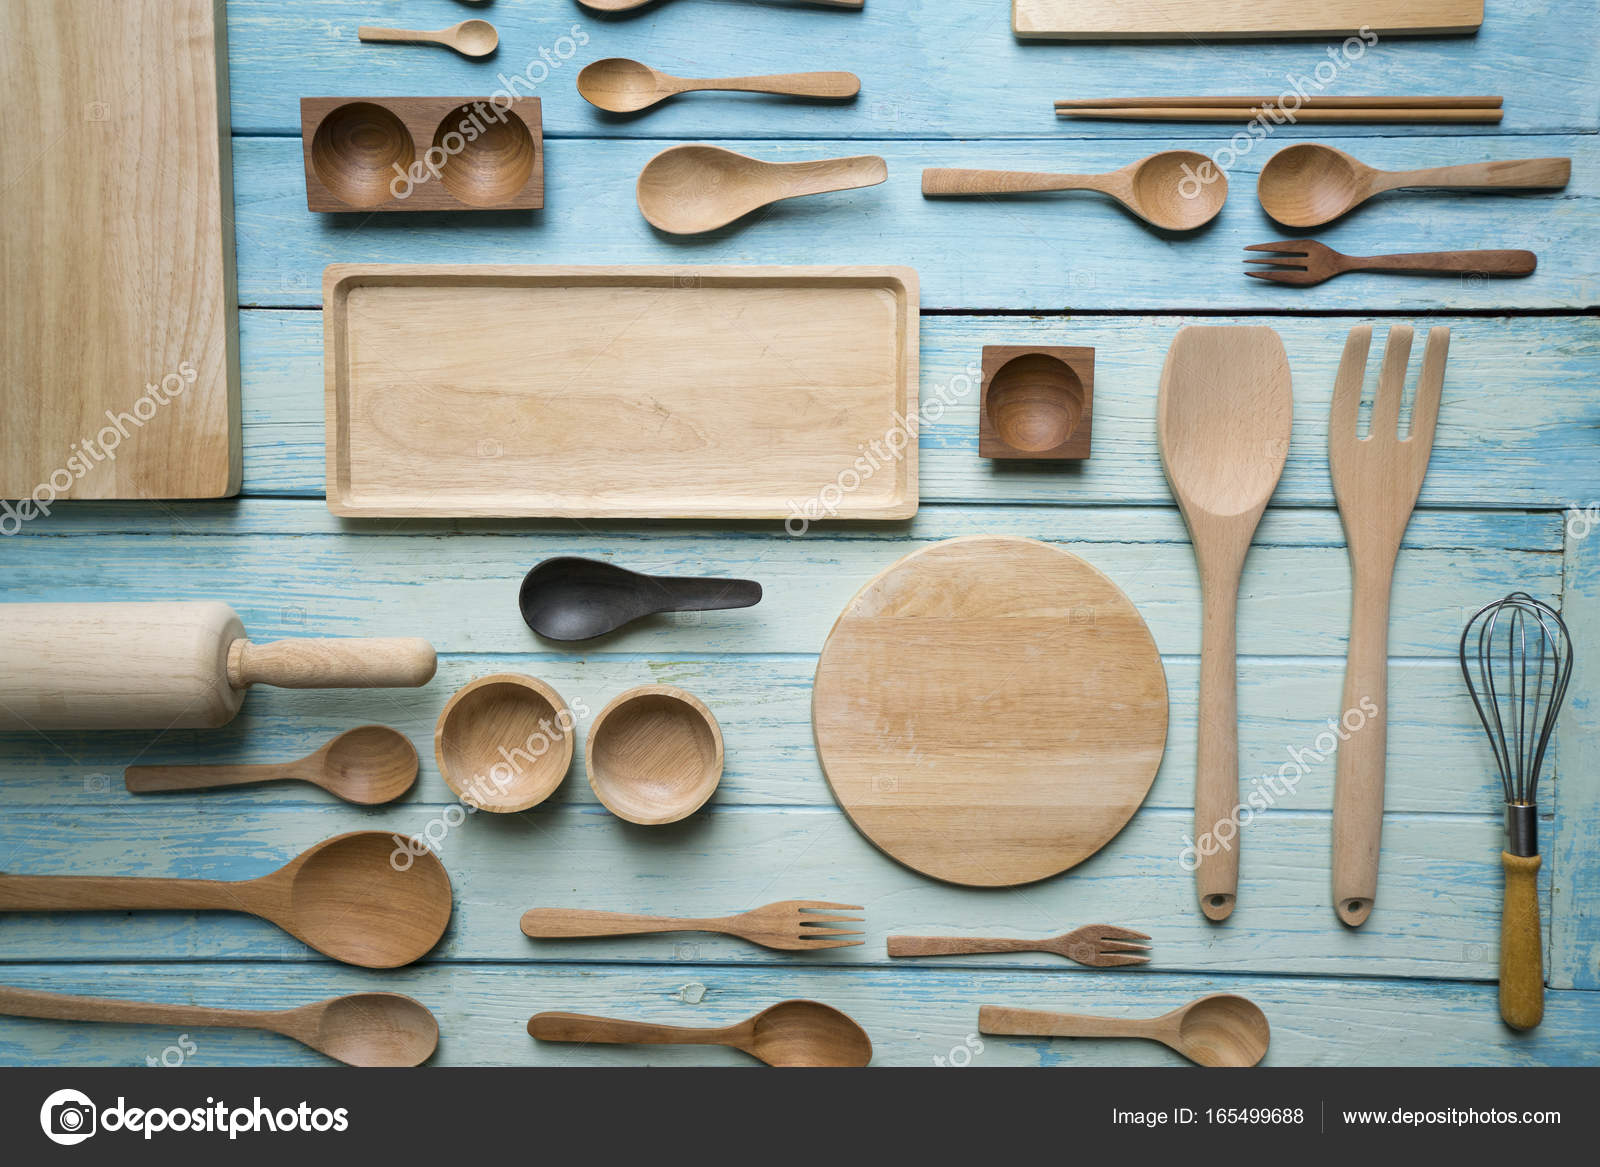 kitchen utensils for cooking on the wooden table, food prepare c ...